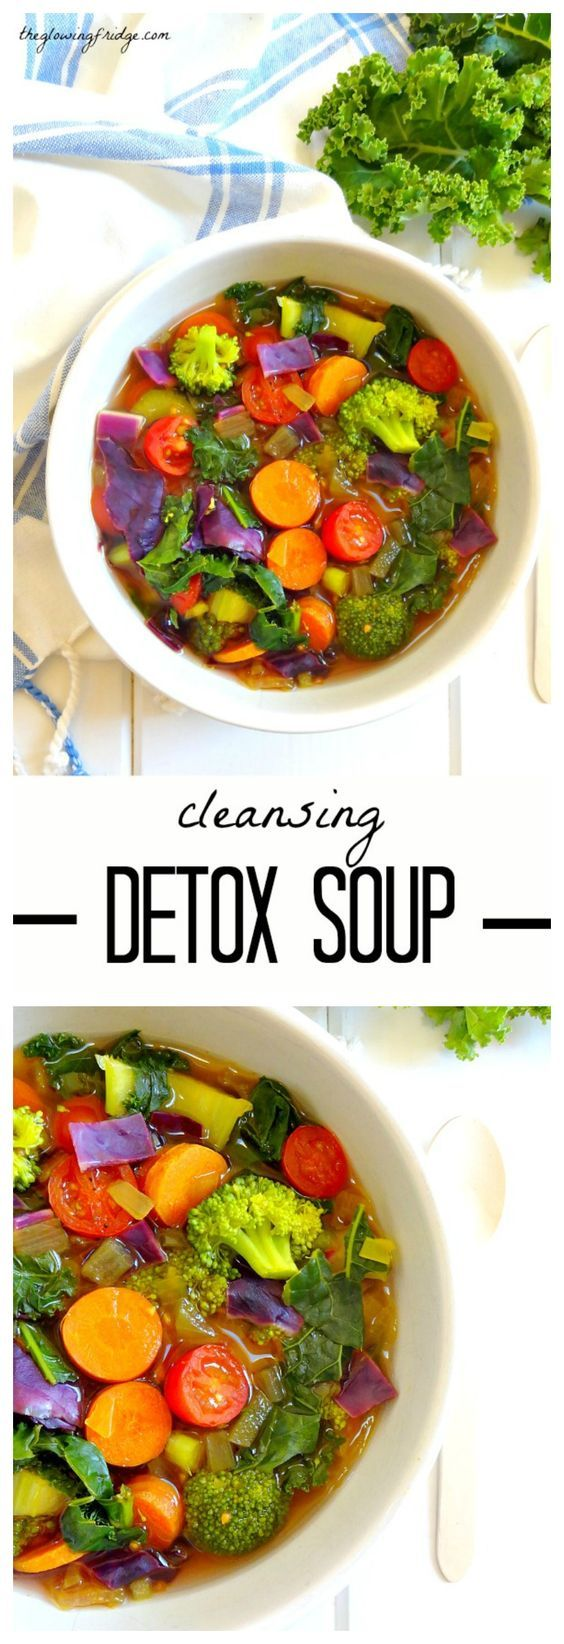 Cleansing Detox Soup || Immune-boosting  wholesome  vegan  oil free  and gluten free warming soup. Perfect for fighting off colds and flu while cleansing with natural  delicious immunity boosting whole foods.